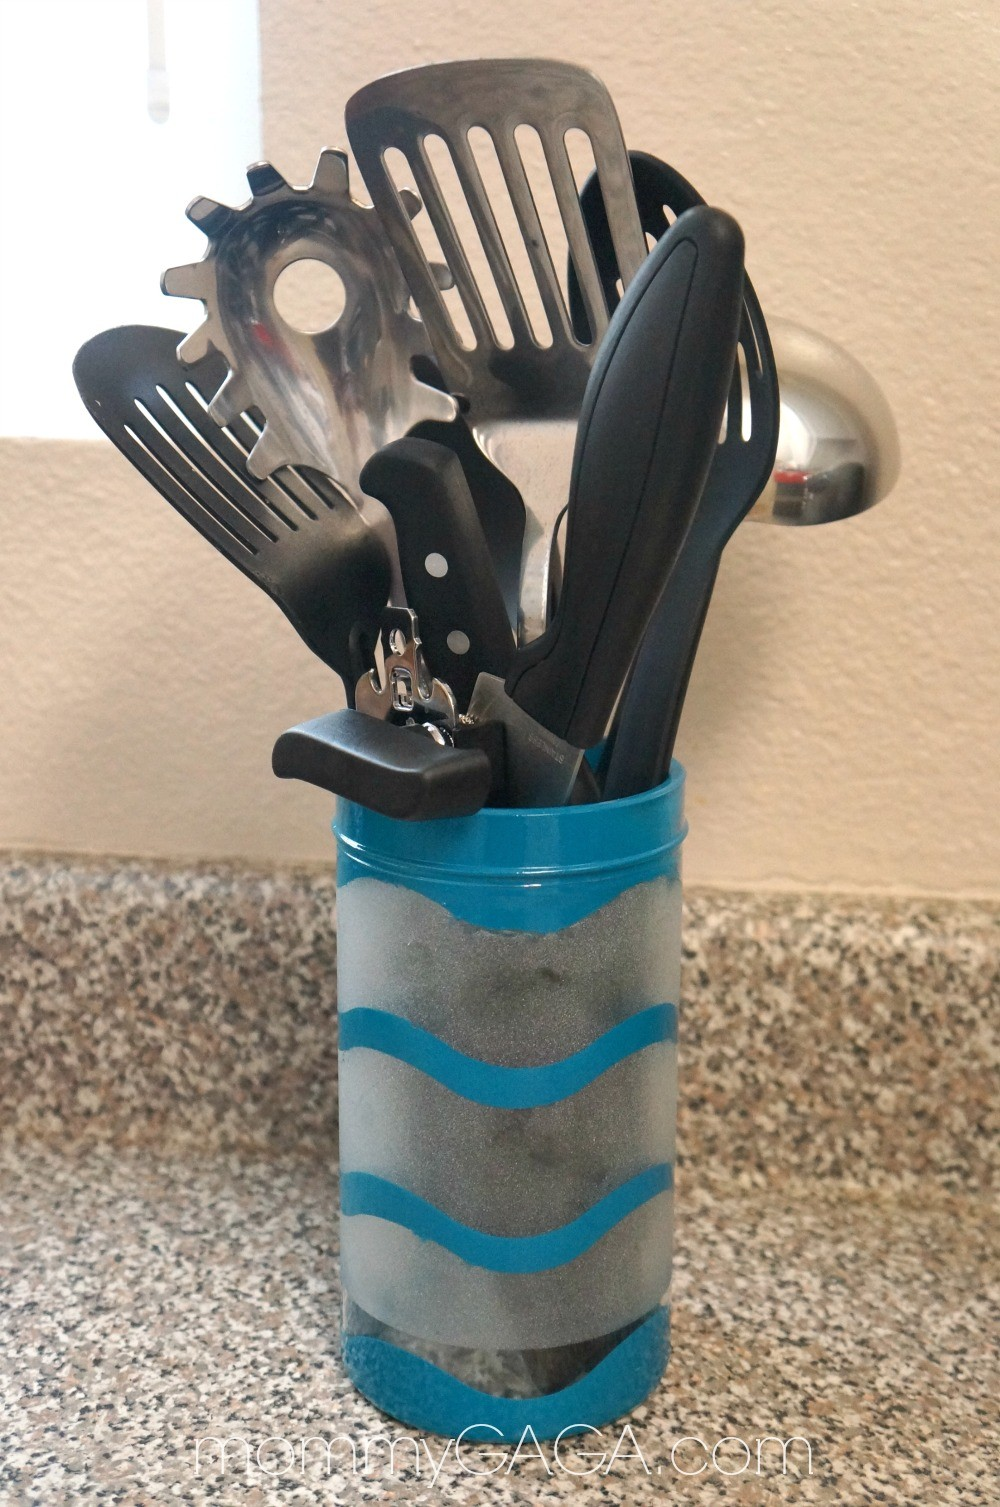 A Colorful Space: This DIY Custom Kitchen Utensil Holder Matches Your Decor!